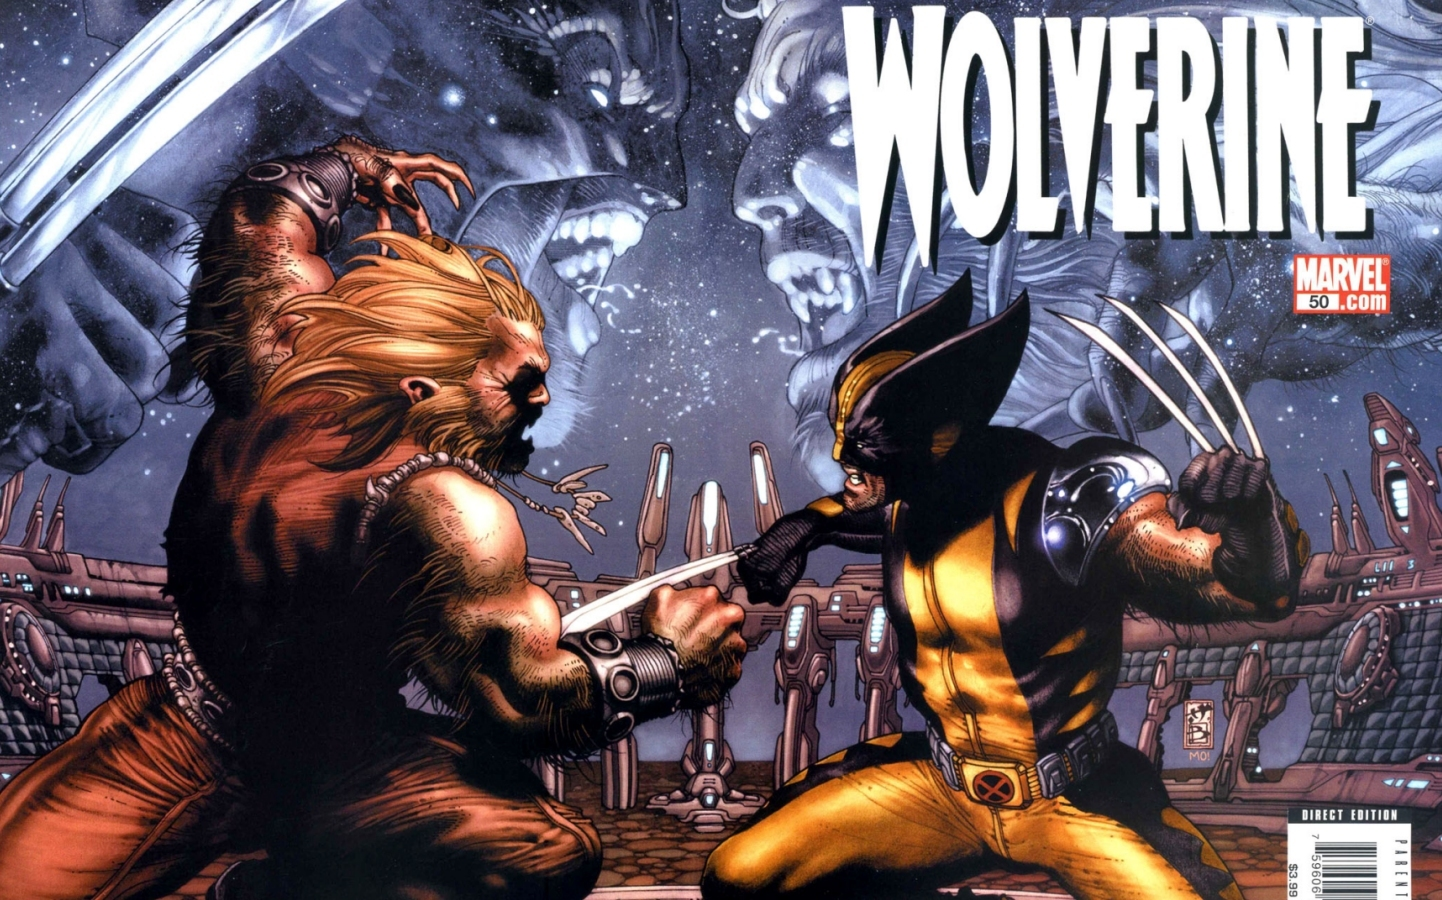 X-Men wolverine cartoon HD Wallpaper